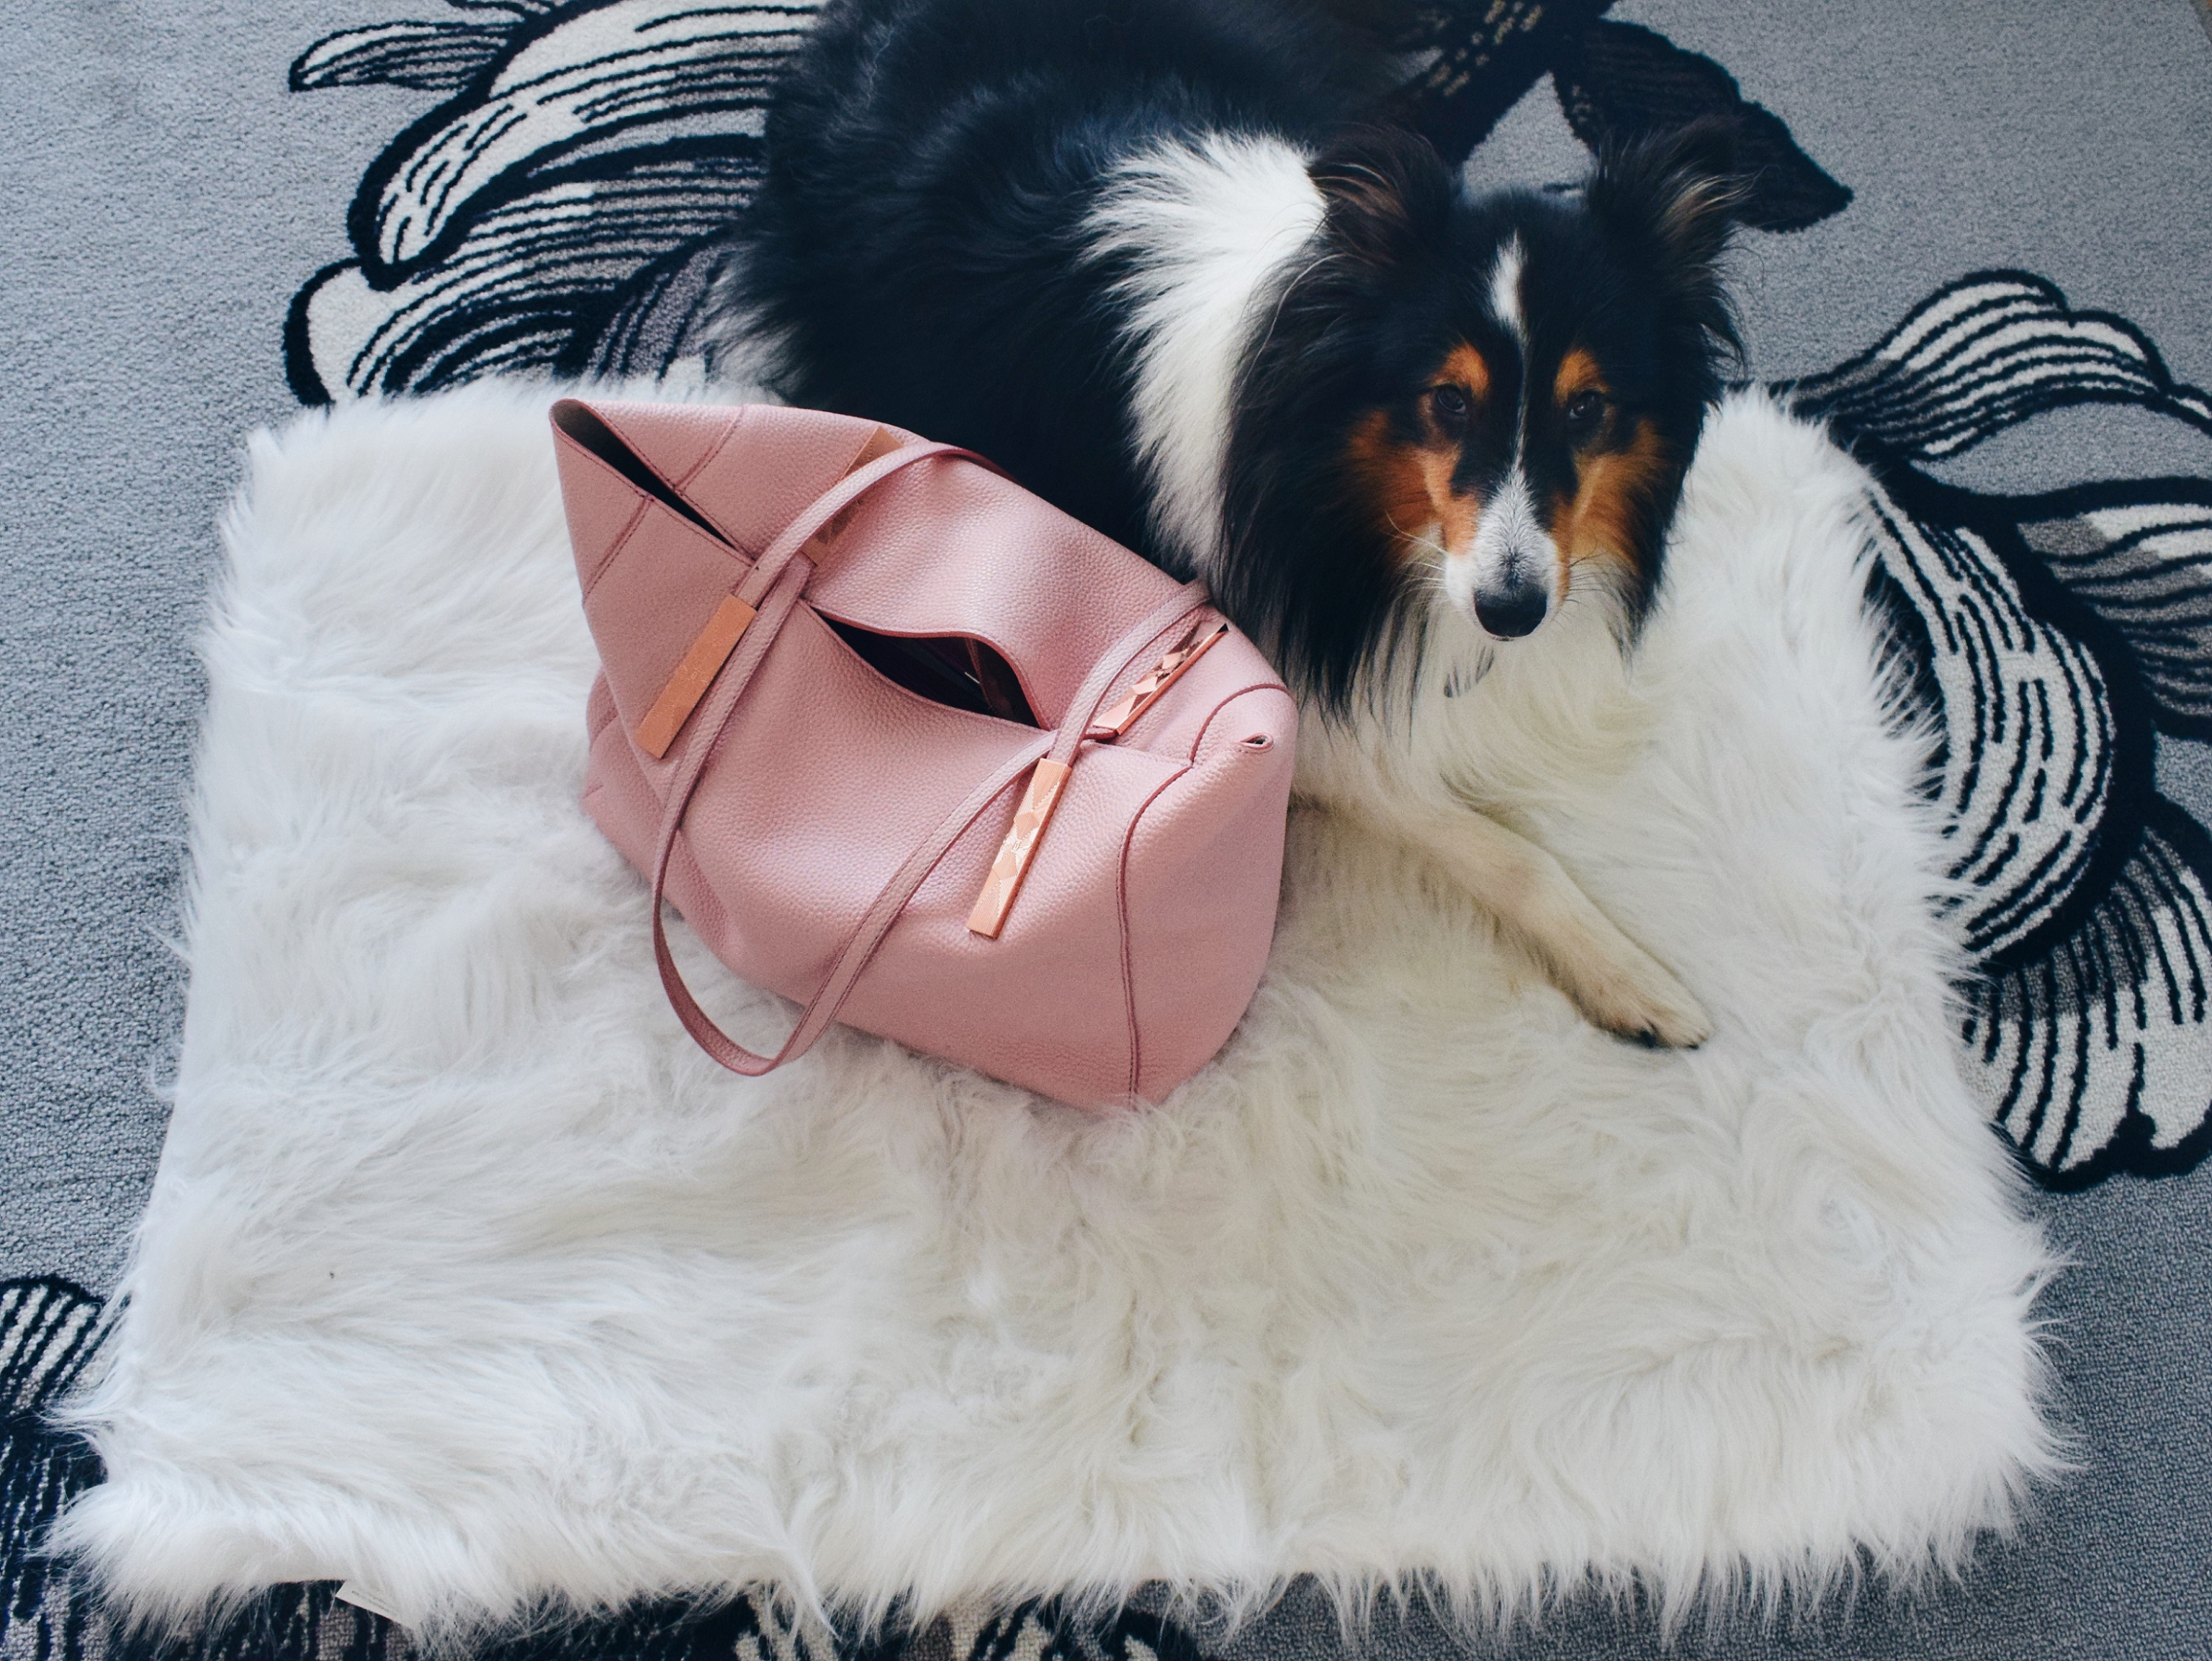 Outlandish blog daily essentials Ted Baker bag Chopard sunglasses make-up